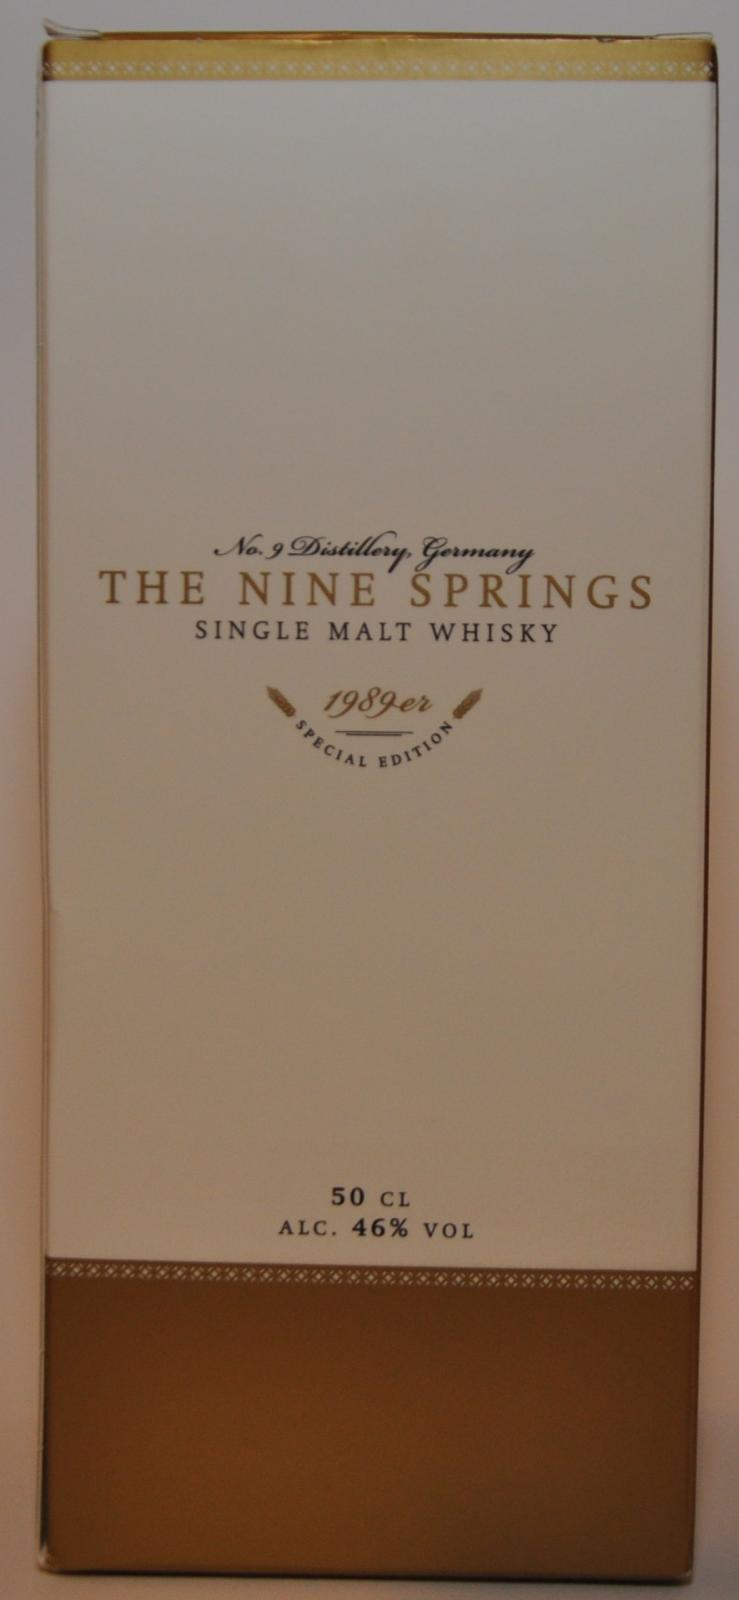 The Nine Springs 1989er Special Edition